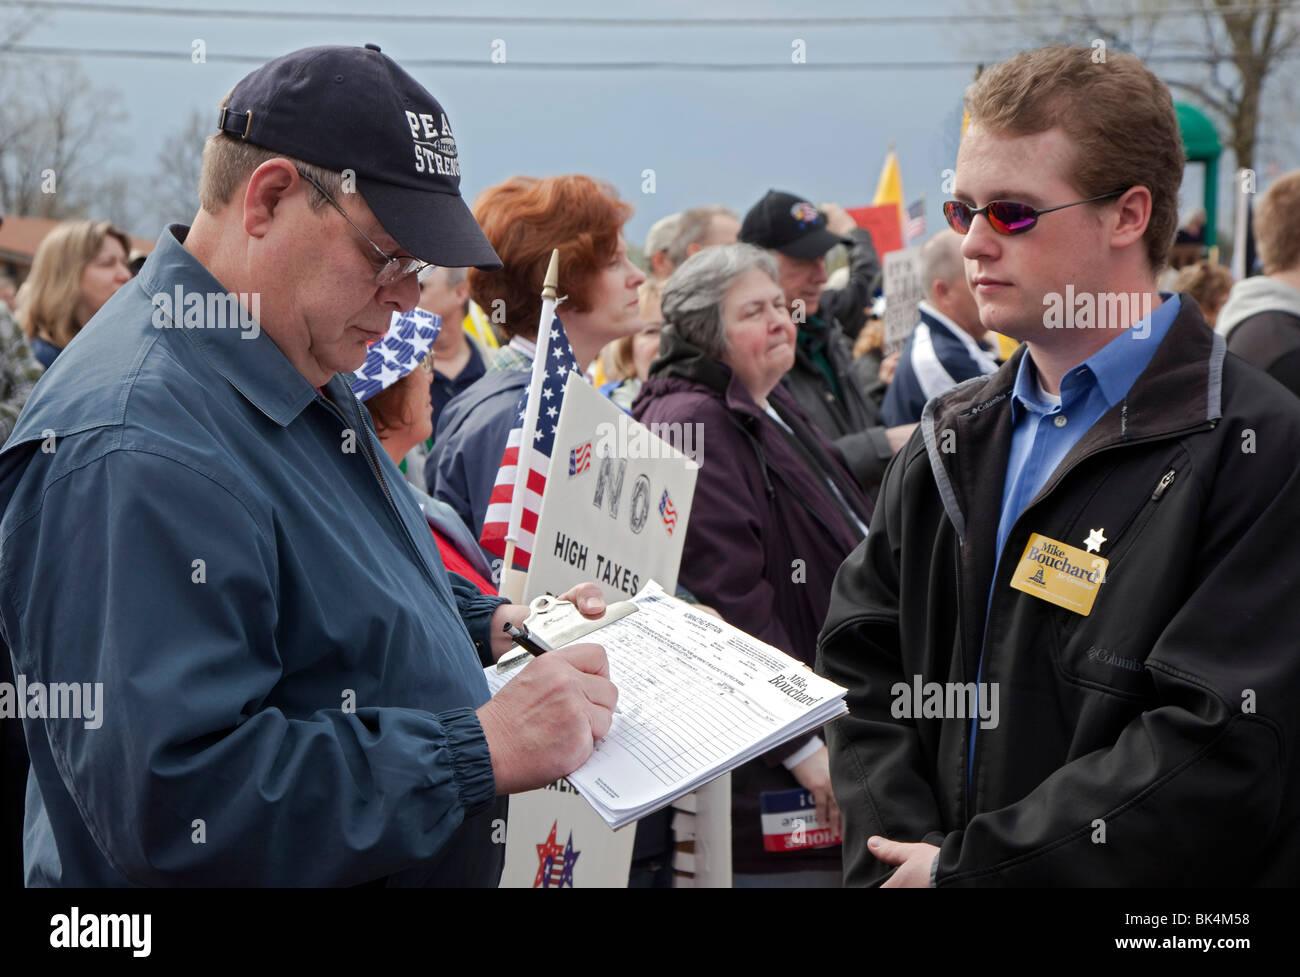 Man Signs Nominating Petition for Gubernatorial Candidate at Tea Party Rally - Stock Image